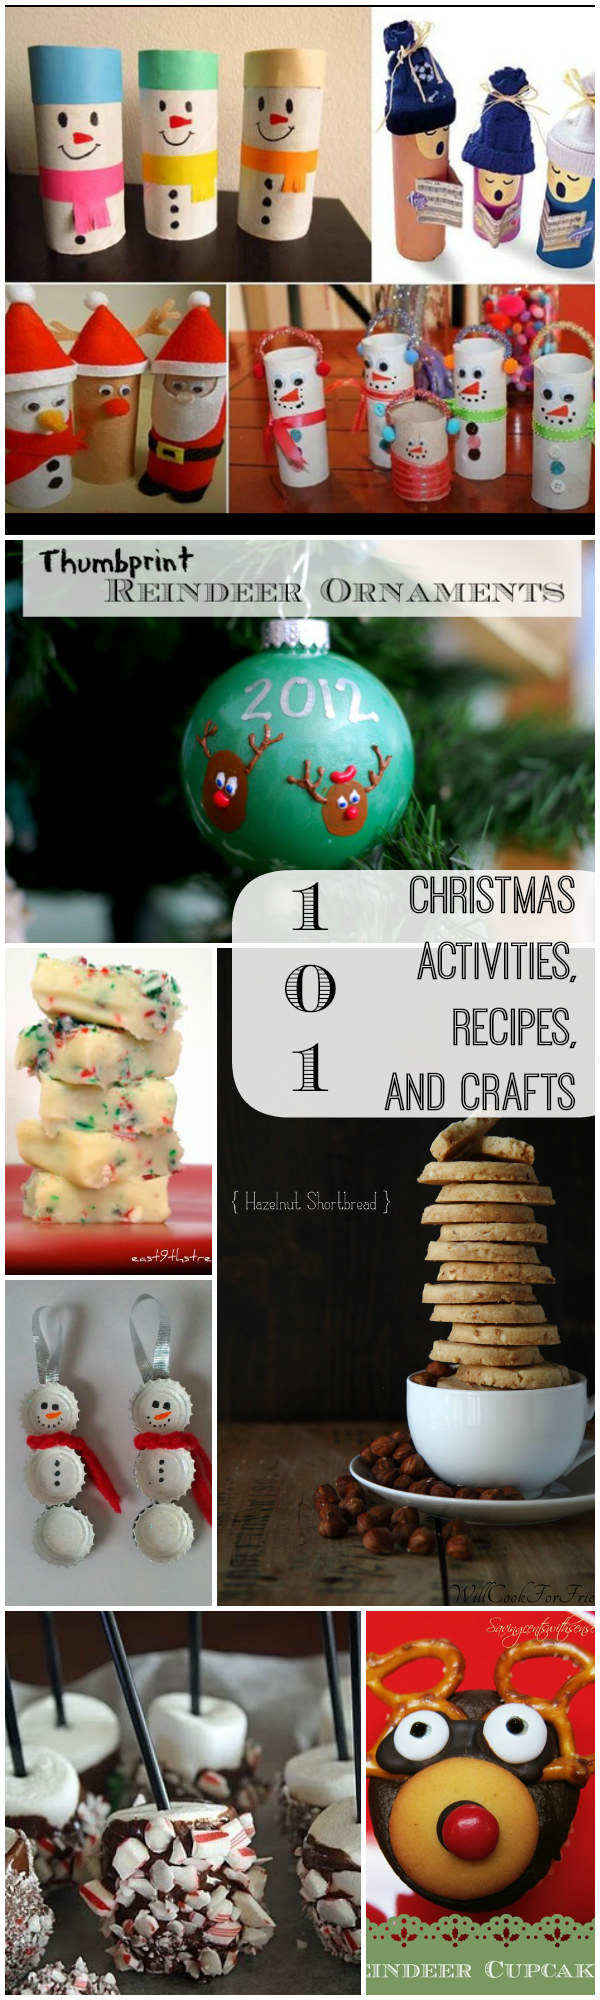 101 Christmas Activities Recipes and Crafts